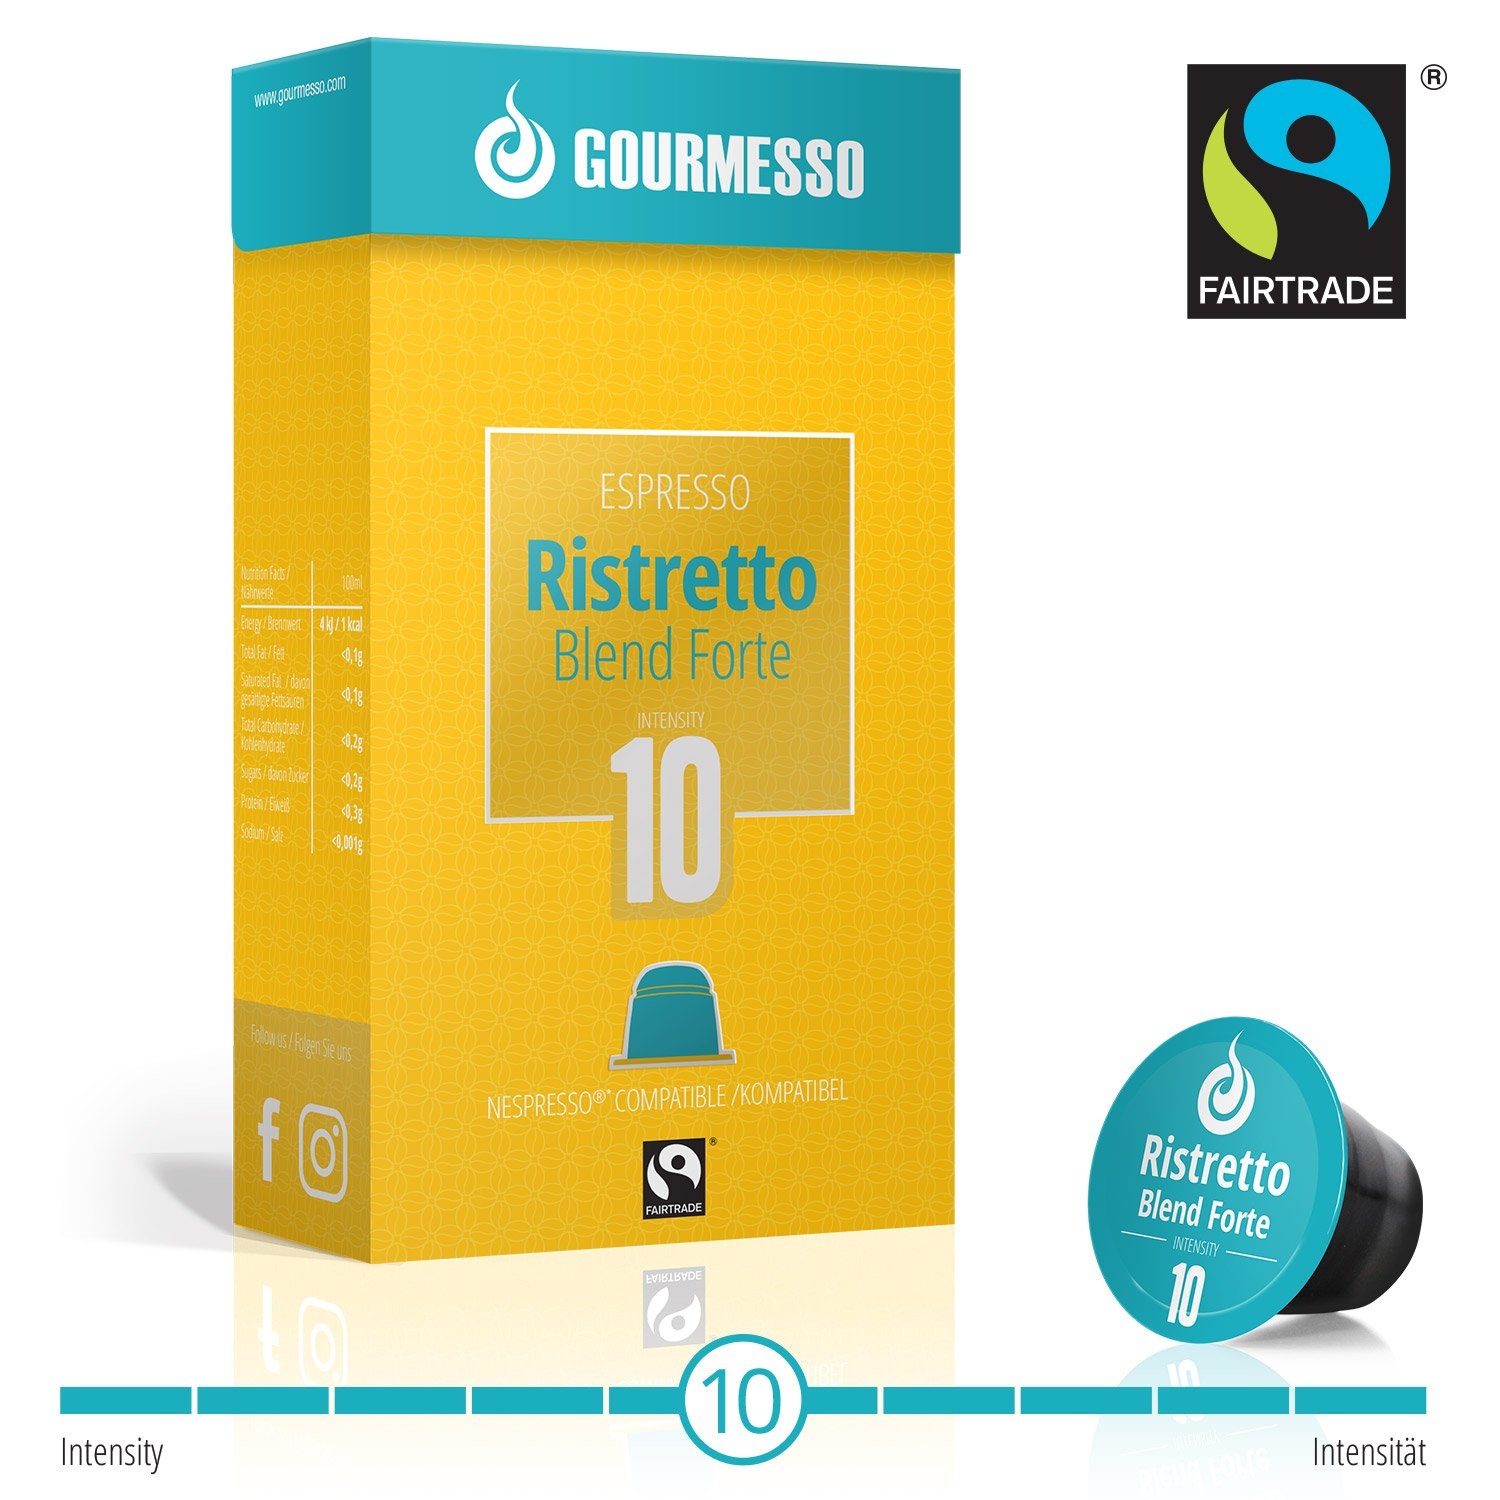 Gourmesso Ristretto Blend Forte - 50 Nespresso Compatible Coffee Capsules - Fair Trade